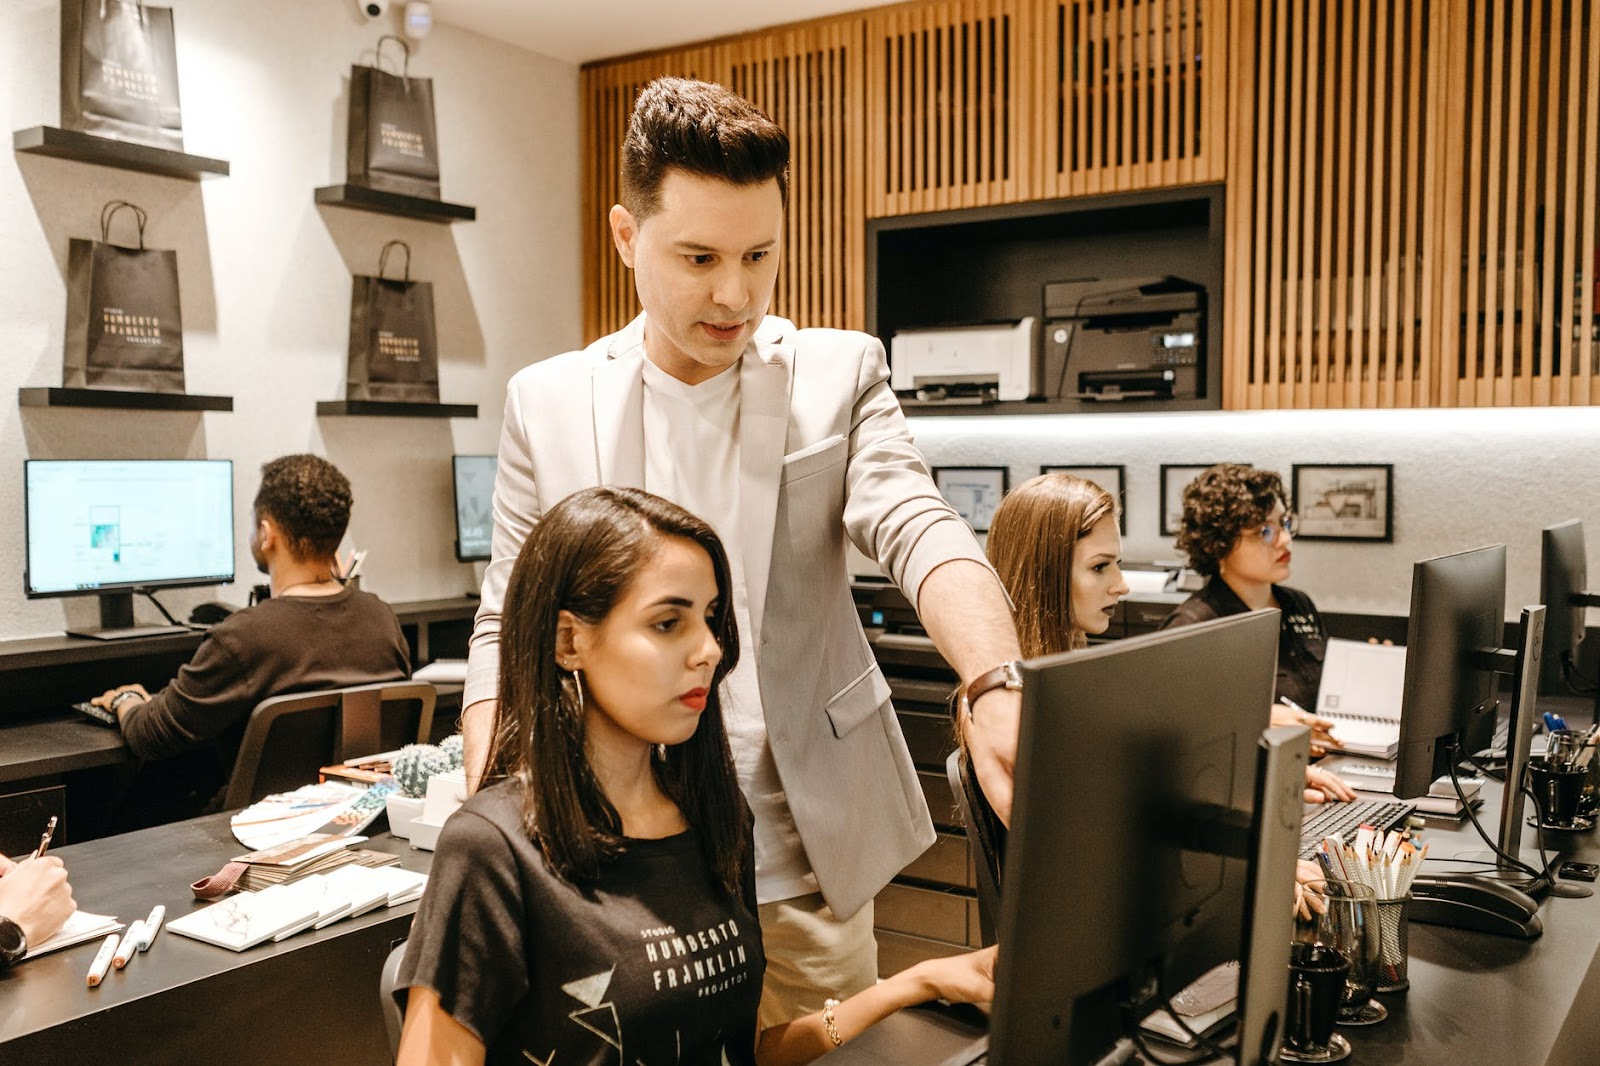 man teaching woman in front of monitor